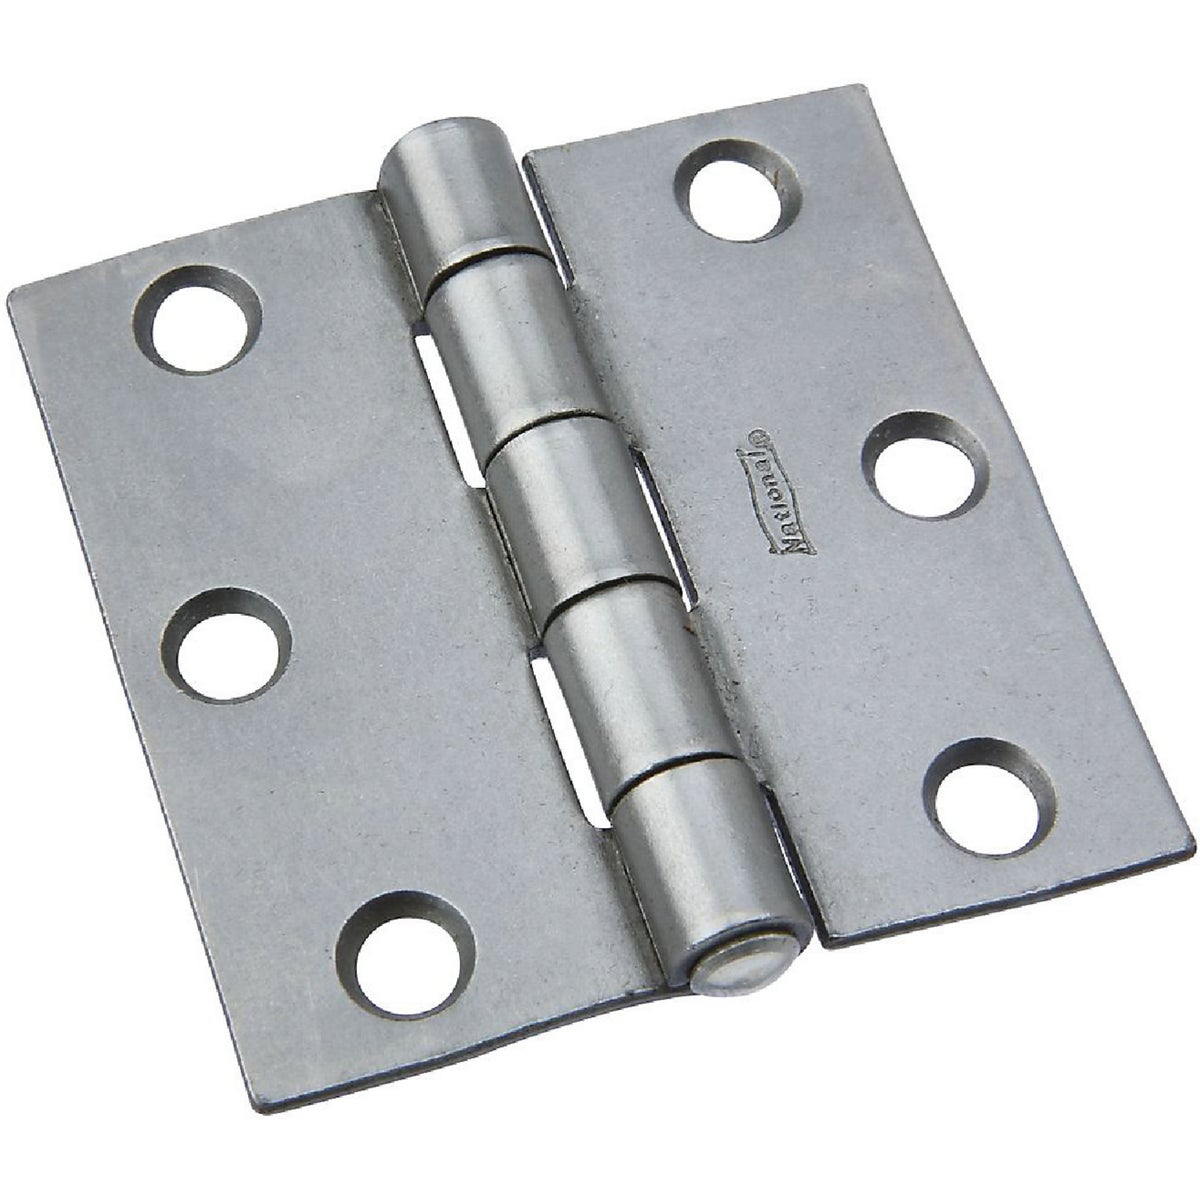 "2-1/2"" BROAD HINGE - N140418 by National Mfg Co"